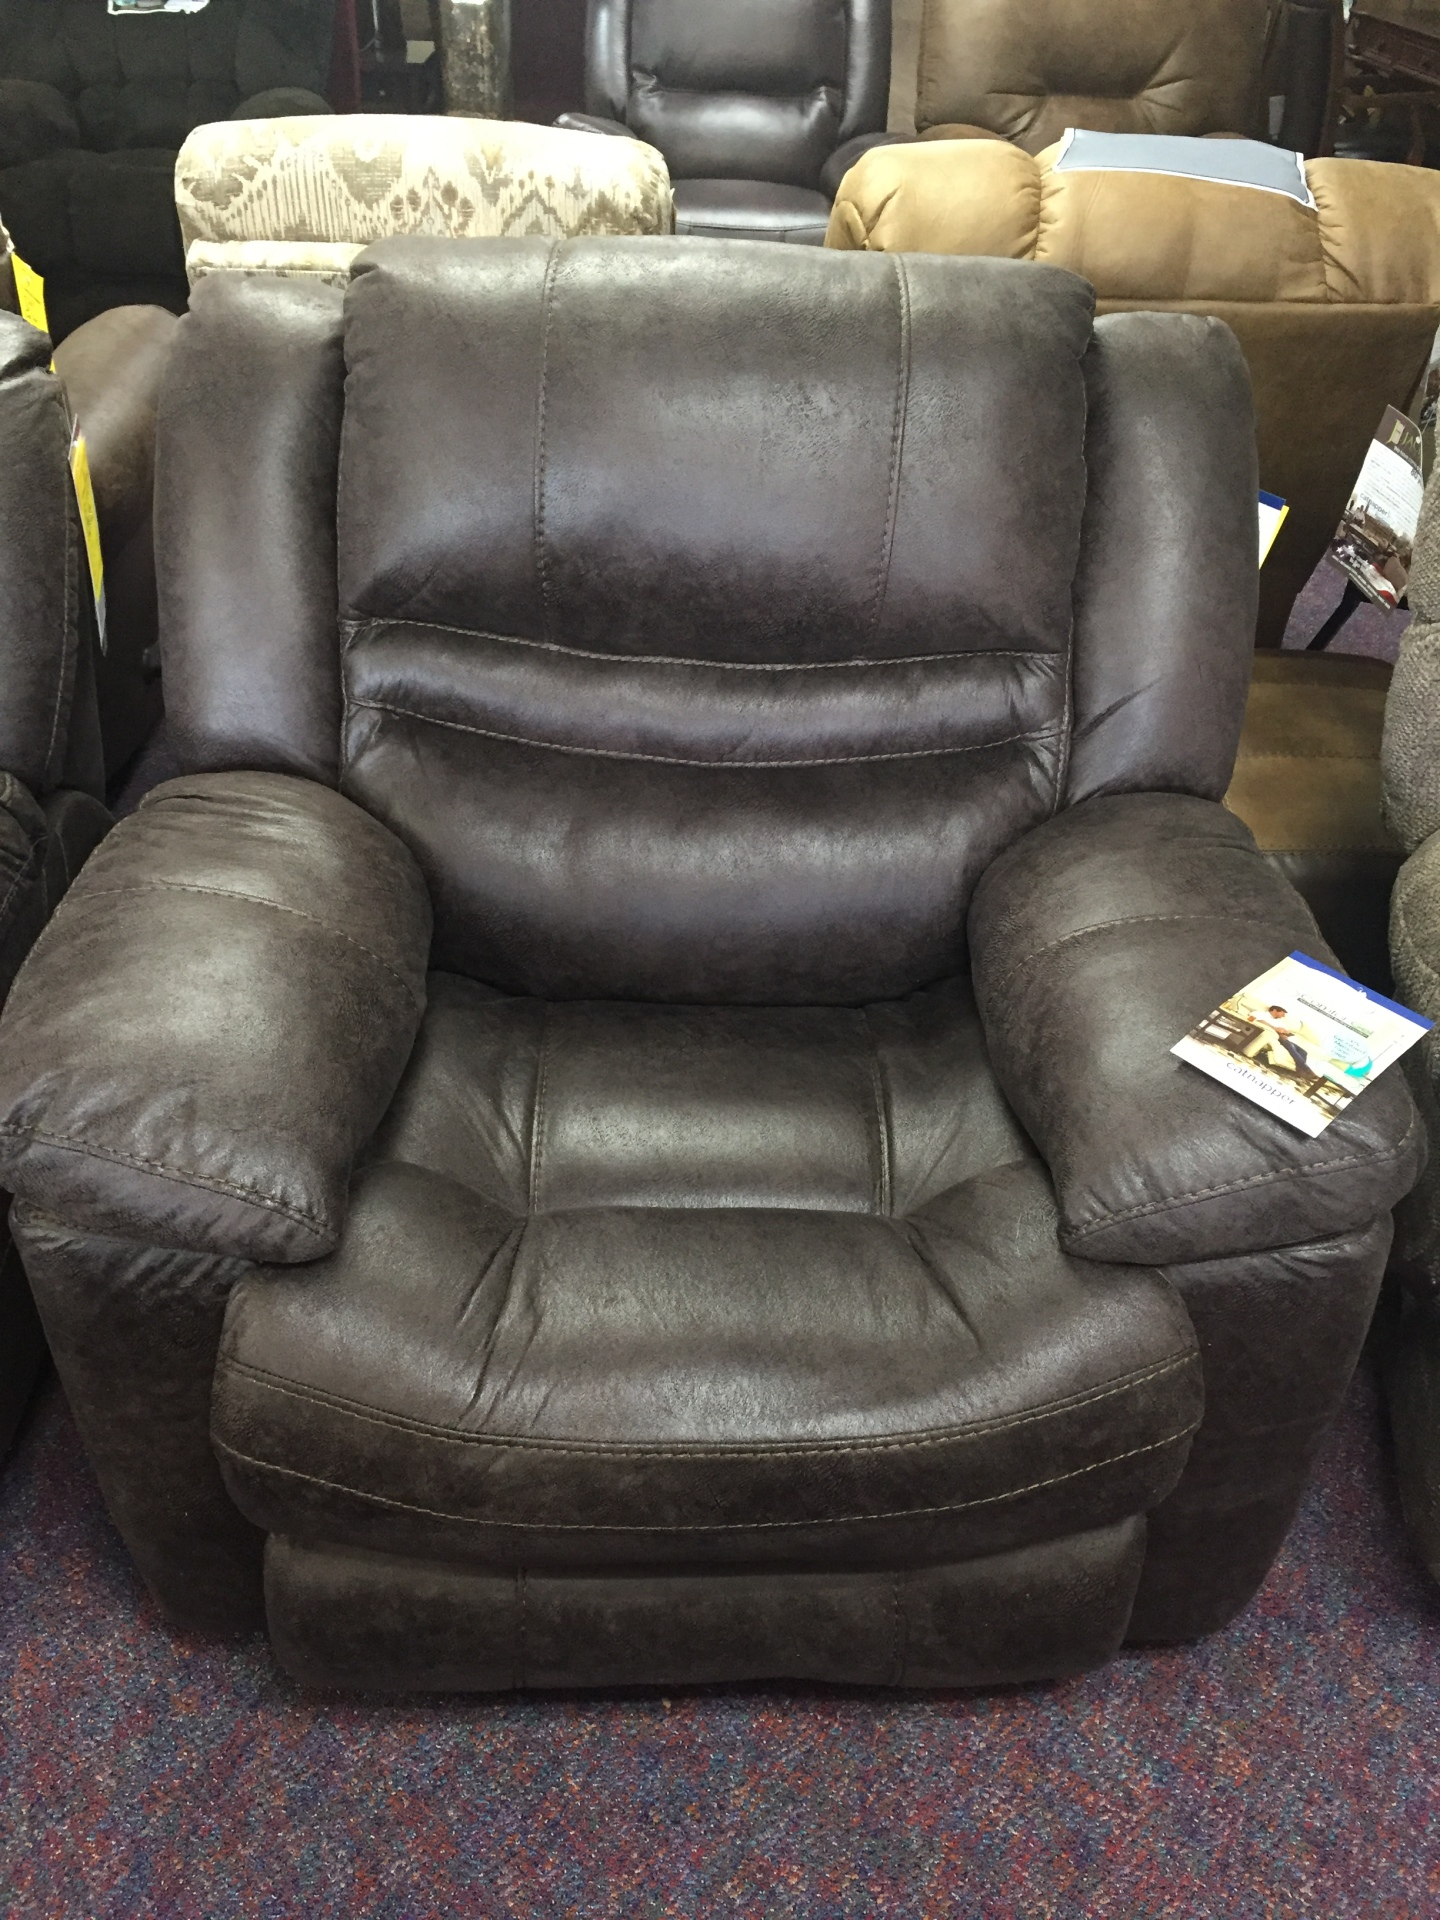 Catnapper Valiant Glider Recliner-